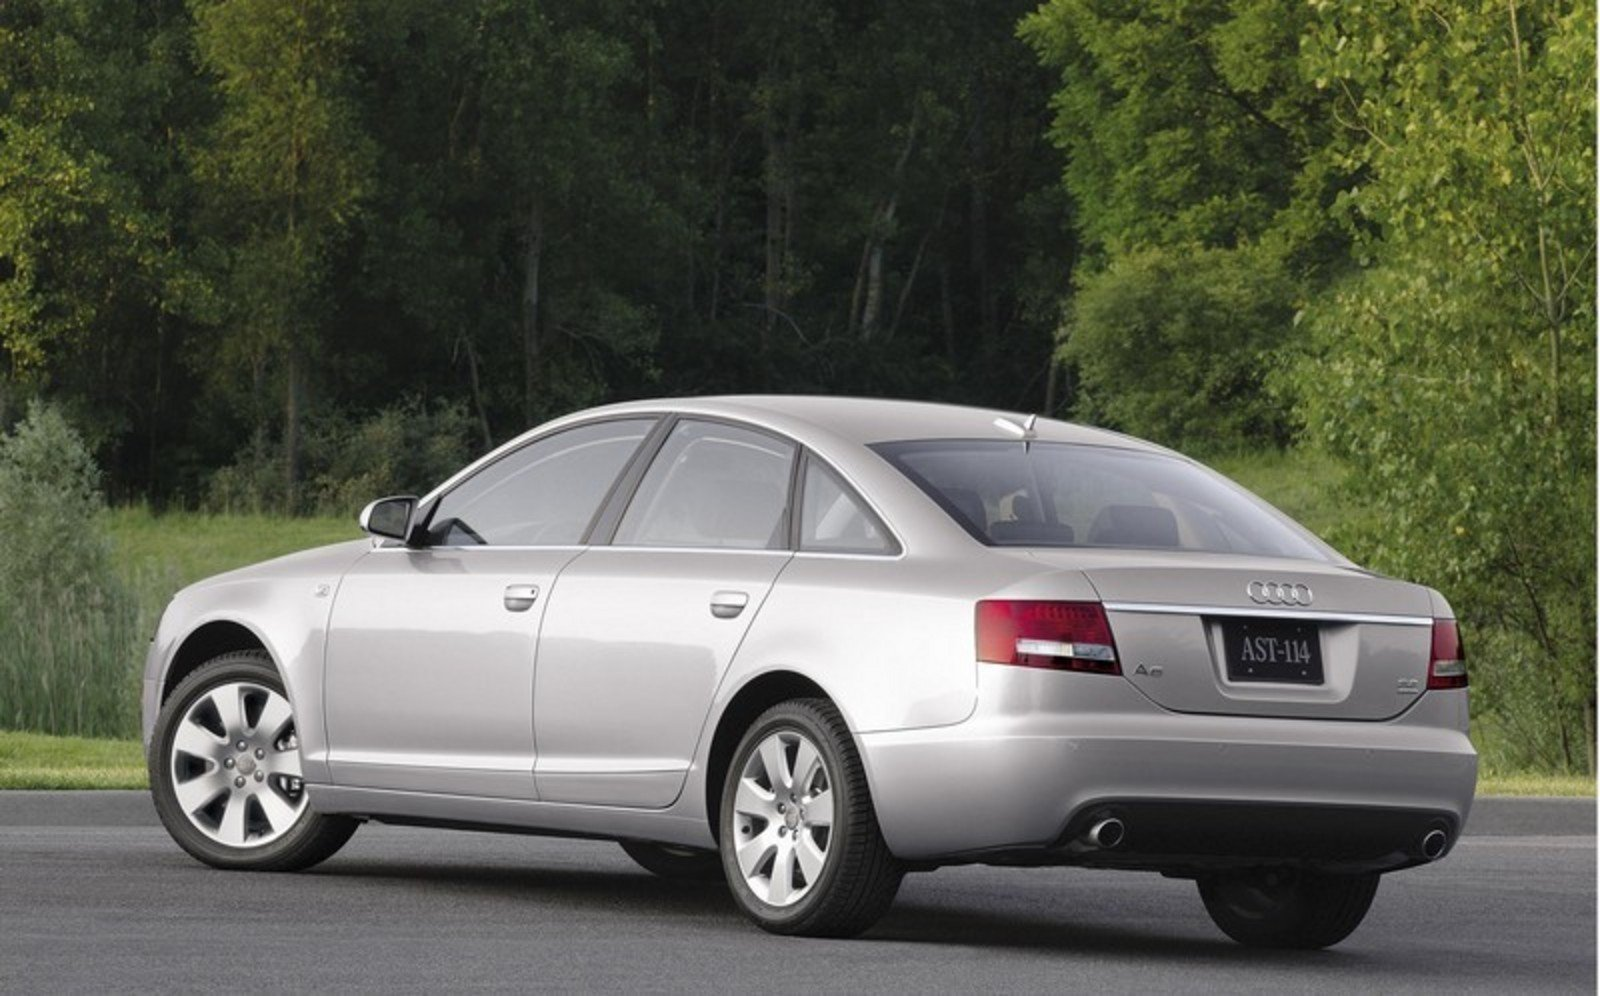 2006 audi a6 sedan picture 45273 car review top speed. Black Bedroom Furniture Sets. Home Design Ideas